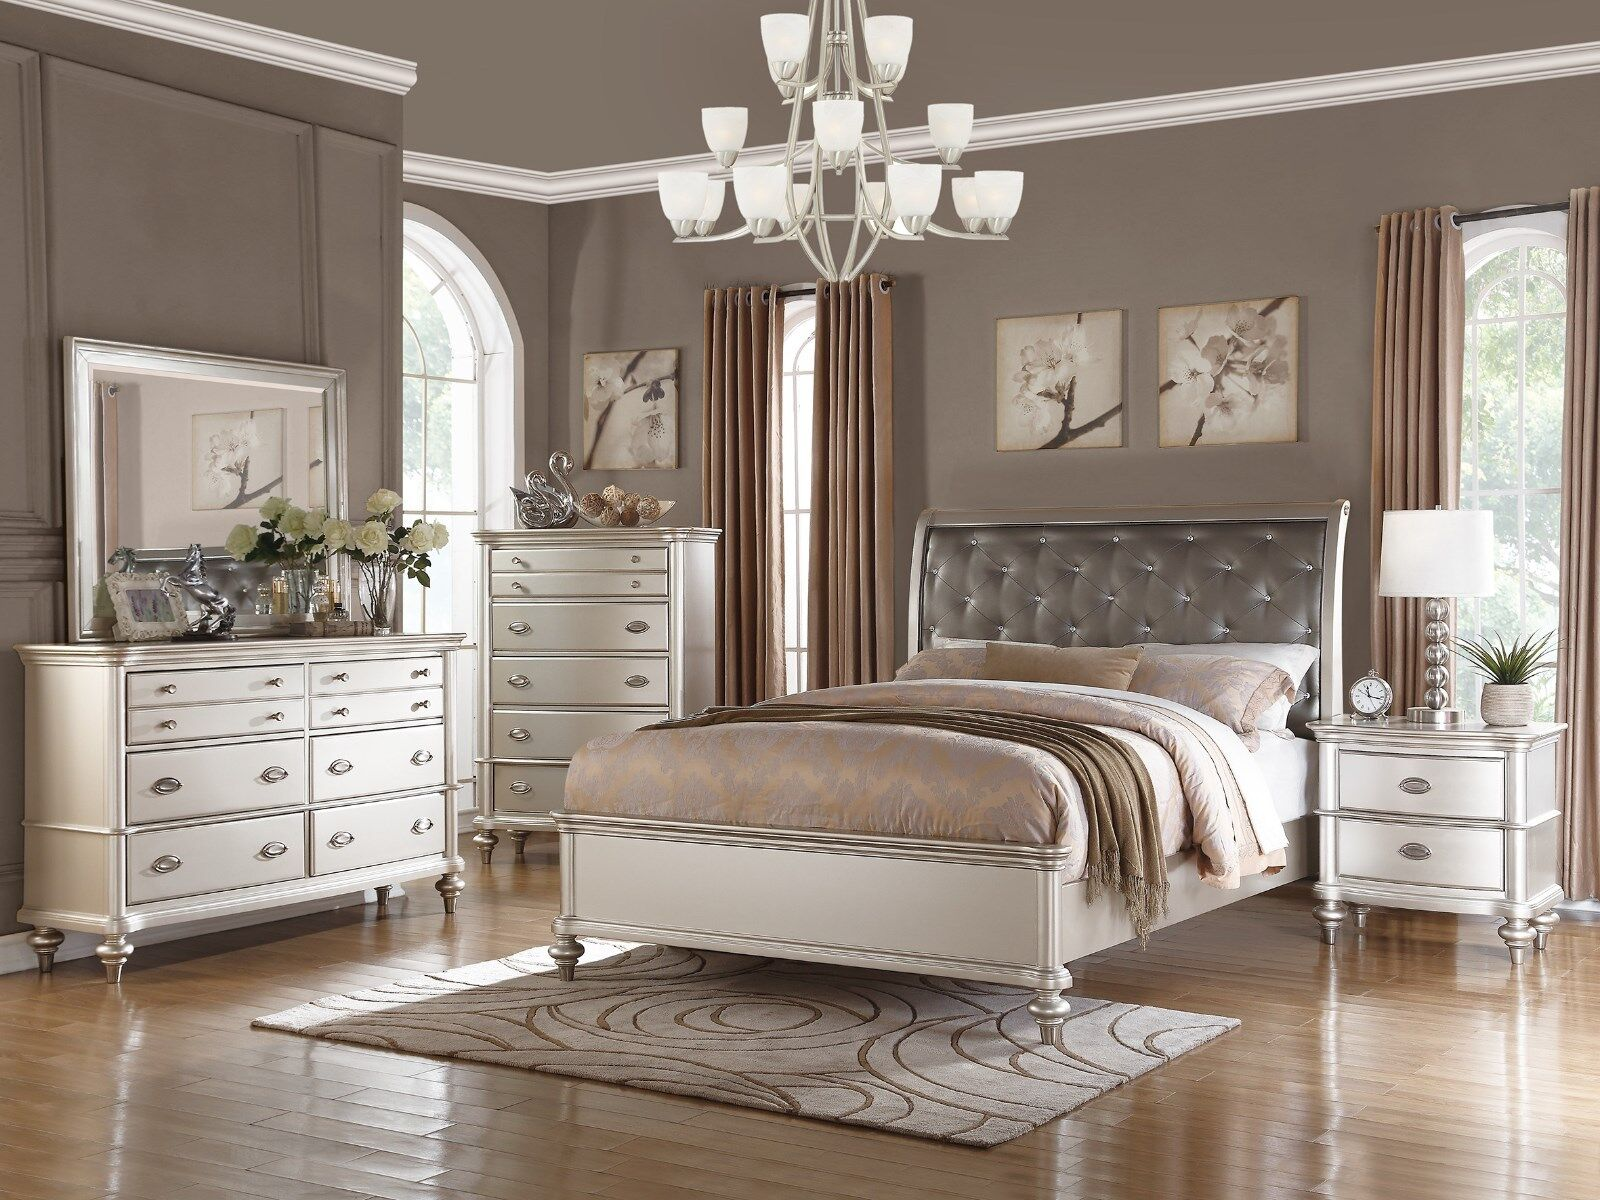 New Bedroom Set Details About New 5pc Zurich Modern Transitional Metallic Silver Wood Queen King Bedroom Set